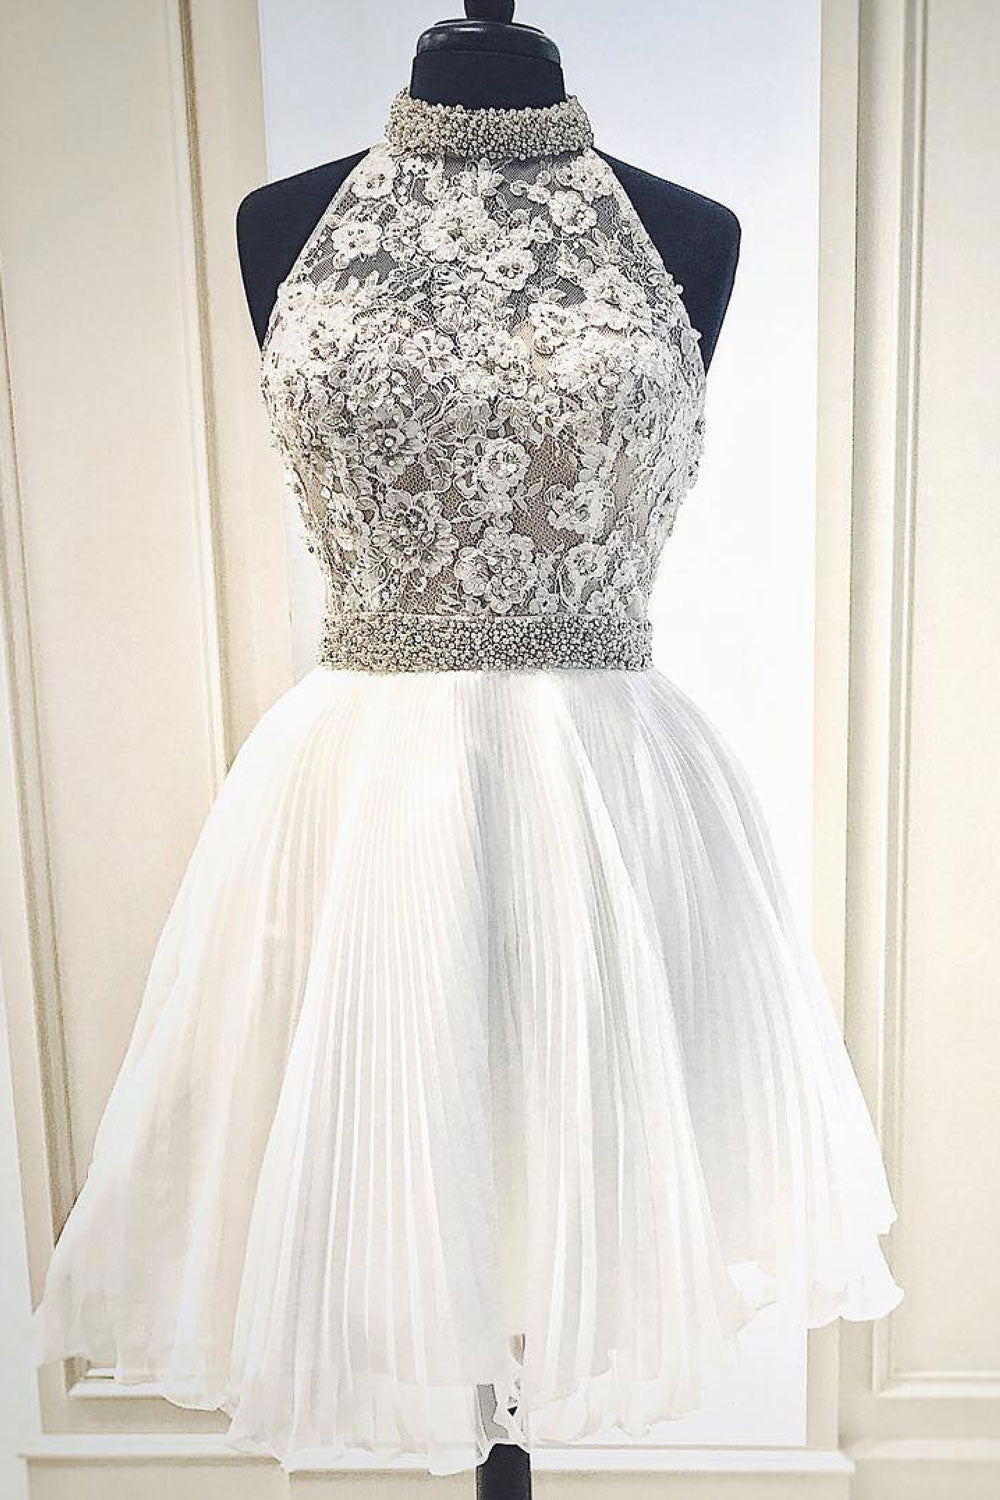 Prom dresses homecoming dresses wedding dresses online for Cute short white wedding dresses